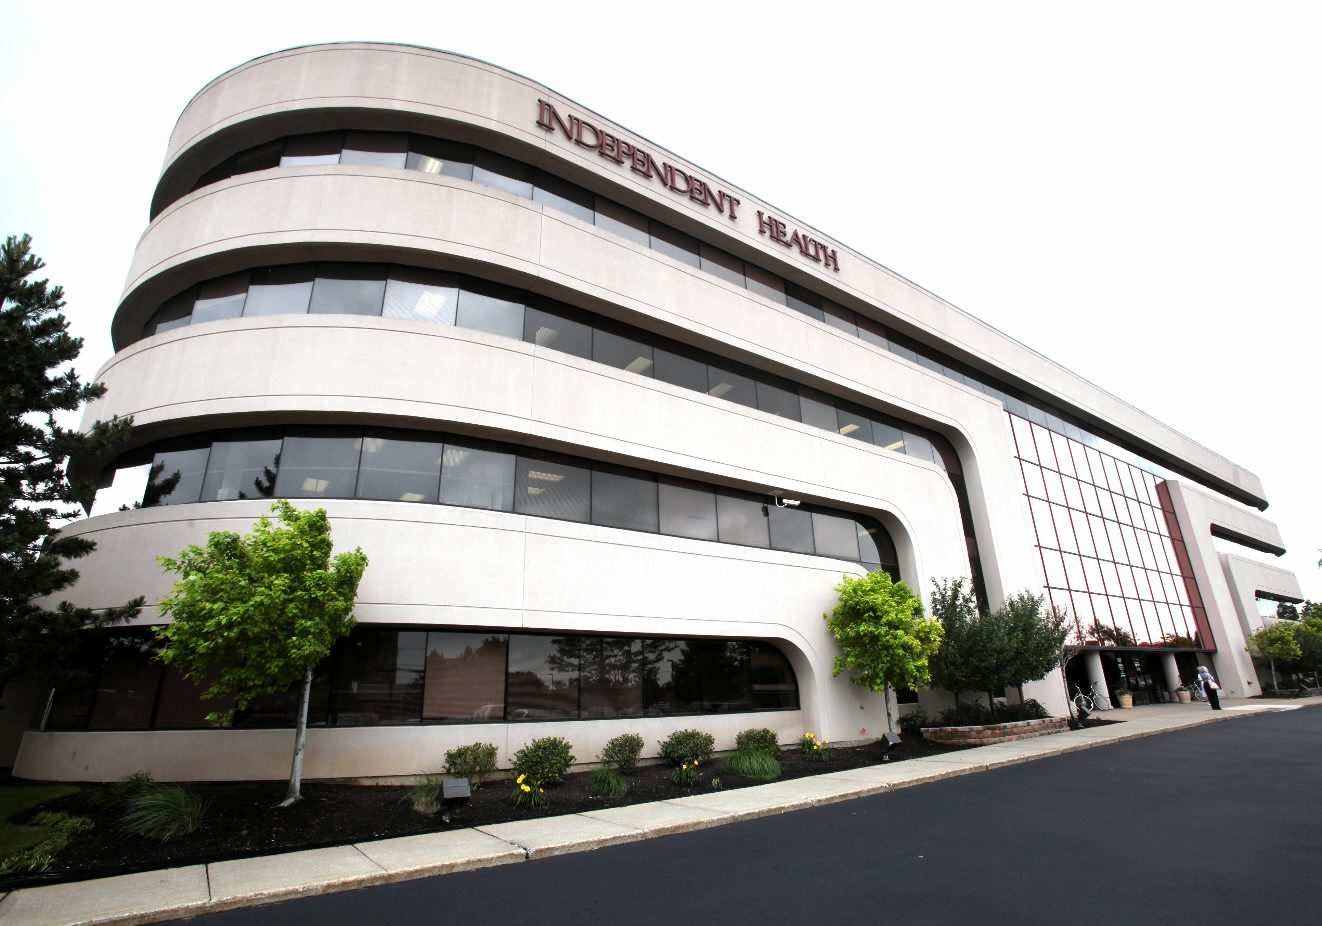 Amherst-headquarted Independent Health has requsted an average 10.4 percent decrease in the premiums of its individual plans, and a 6.2 percent decrease in its small-group plans.